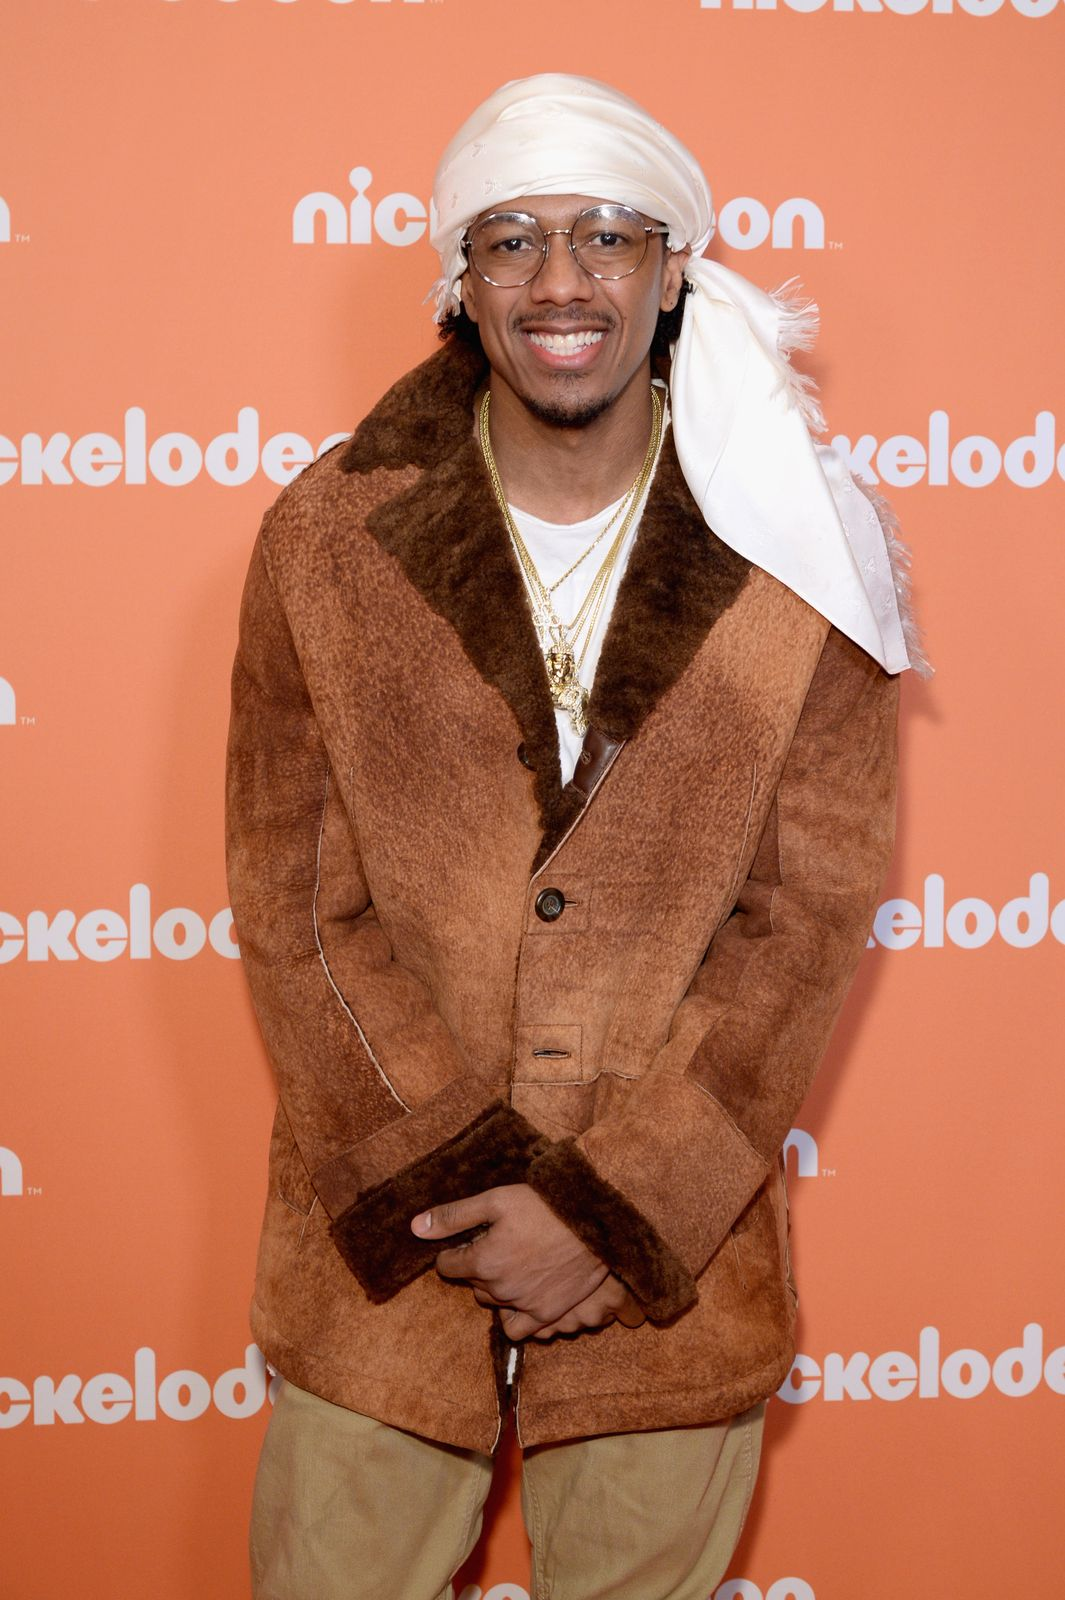 Nick Cannon attends the Nickelodeon Upfront 2018 at Palace Theatre on March 6, 2018 in New York City. | Photo: Getty Images